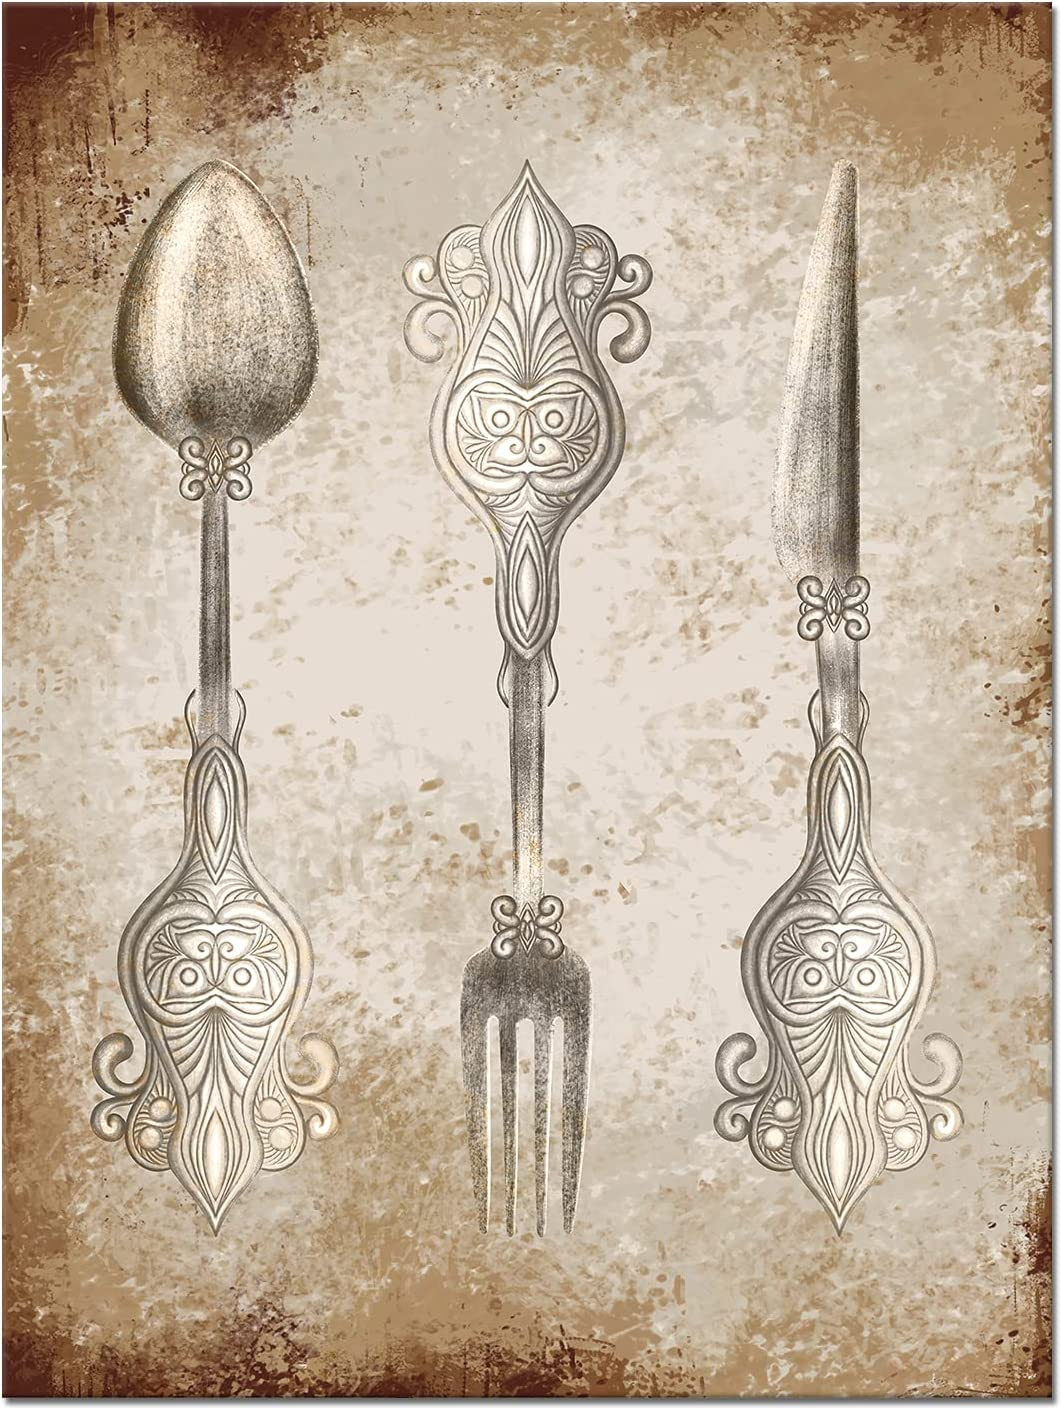 OuElegent Fork Knife Spoon Wall Art Modern Kitchen Pictures Wall Decor Vintage Silver Tableware Pattern Painting for Dining Room Restaurant Bar Decoration Framed Ready to Hang